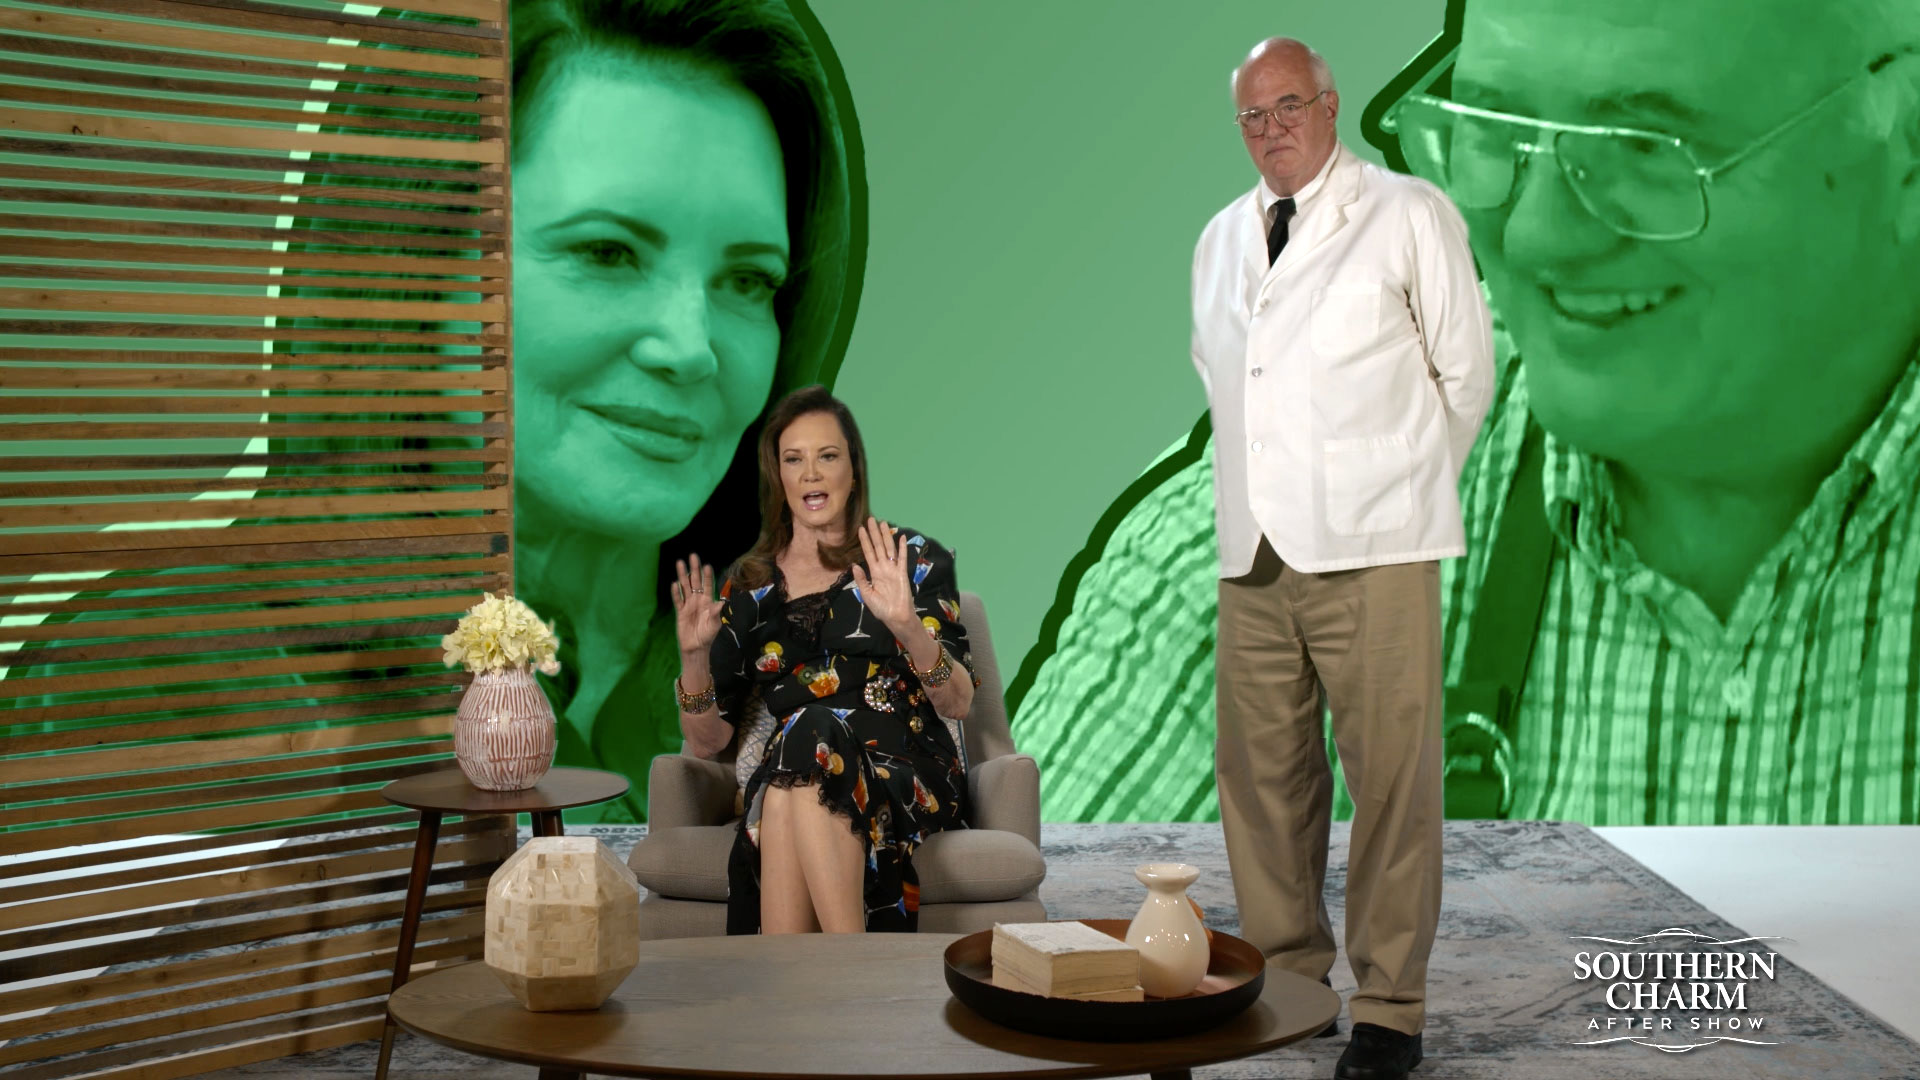 Patricia Altschul and Butler Michael Open up About Their Relationship